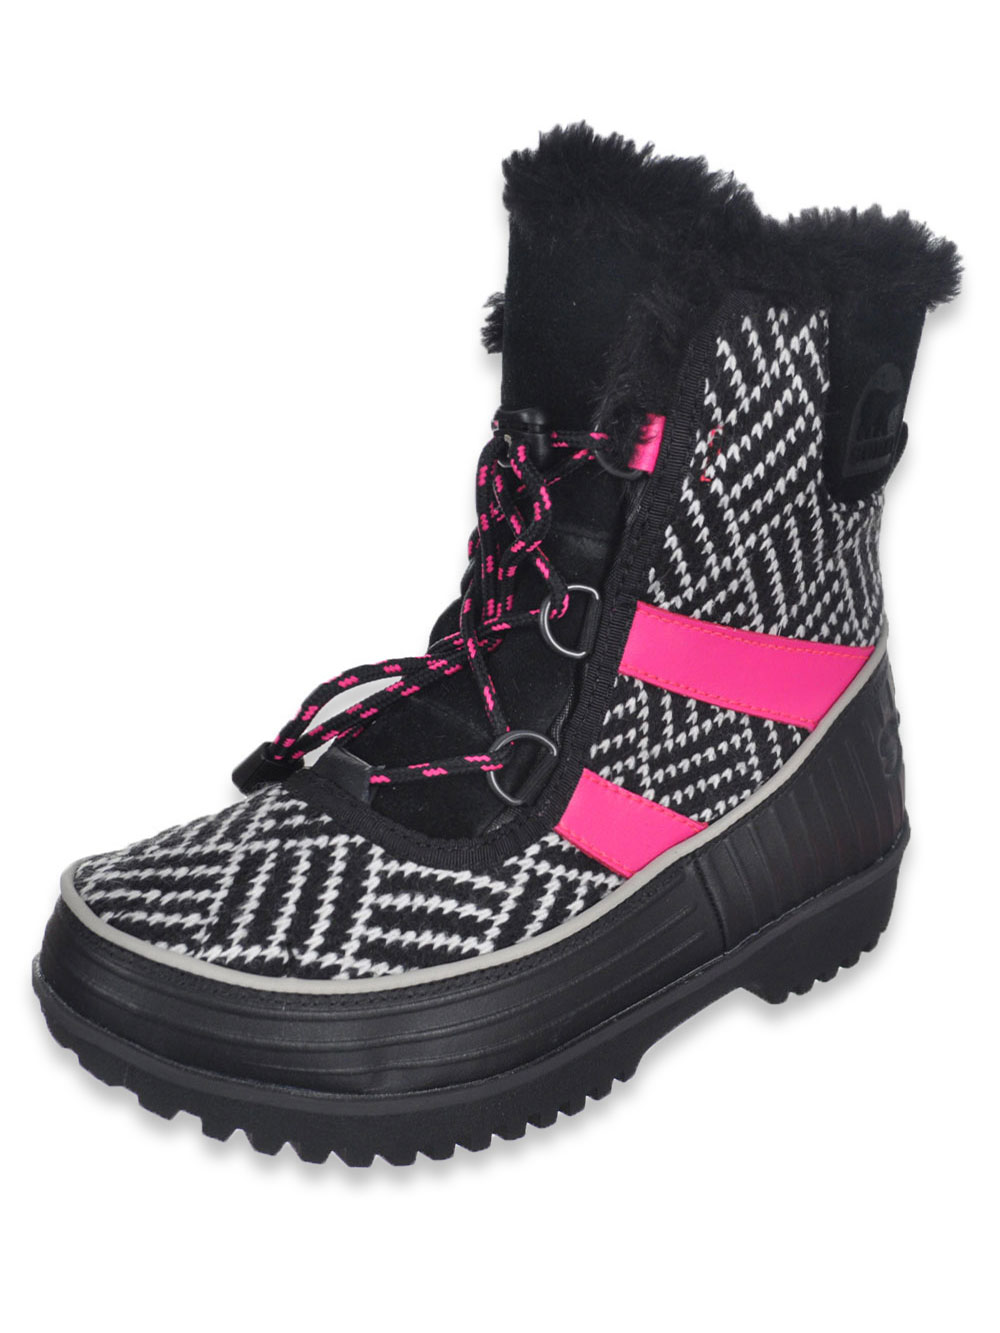 Girls Black and Pink Boots